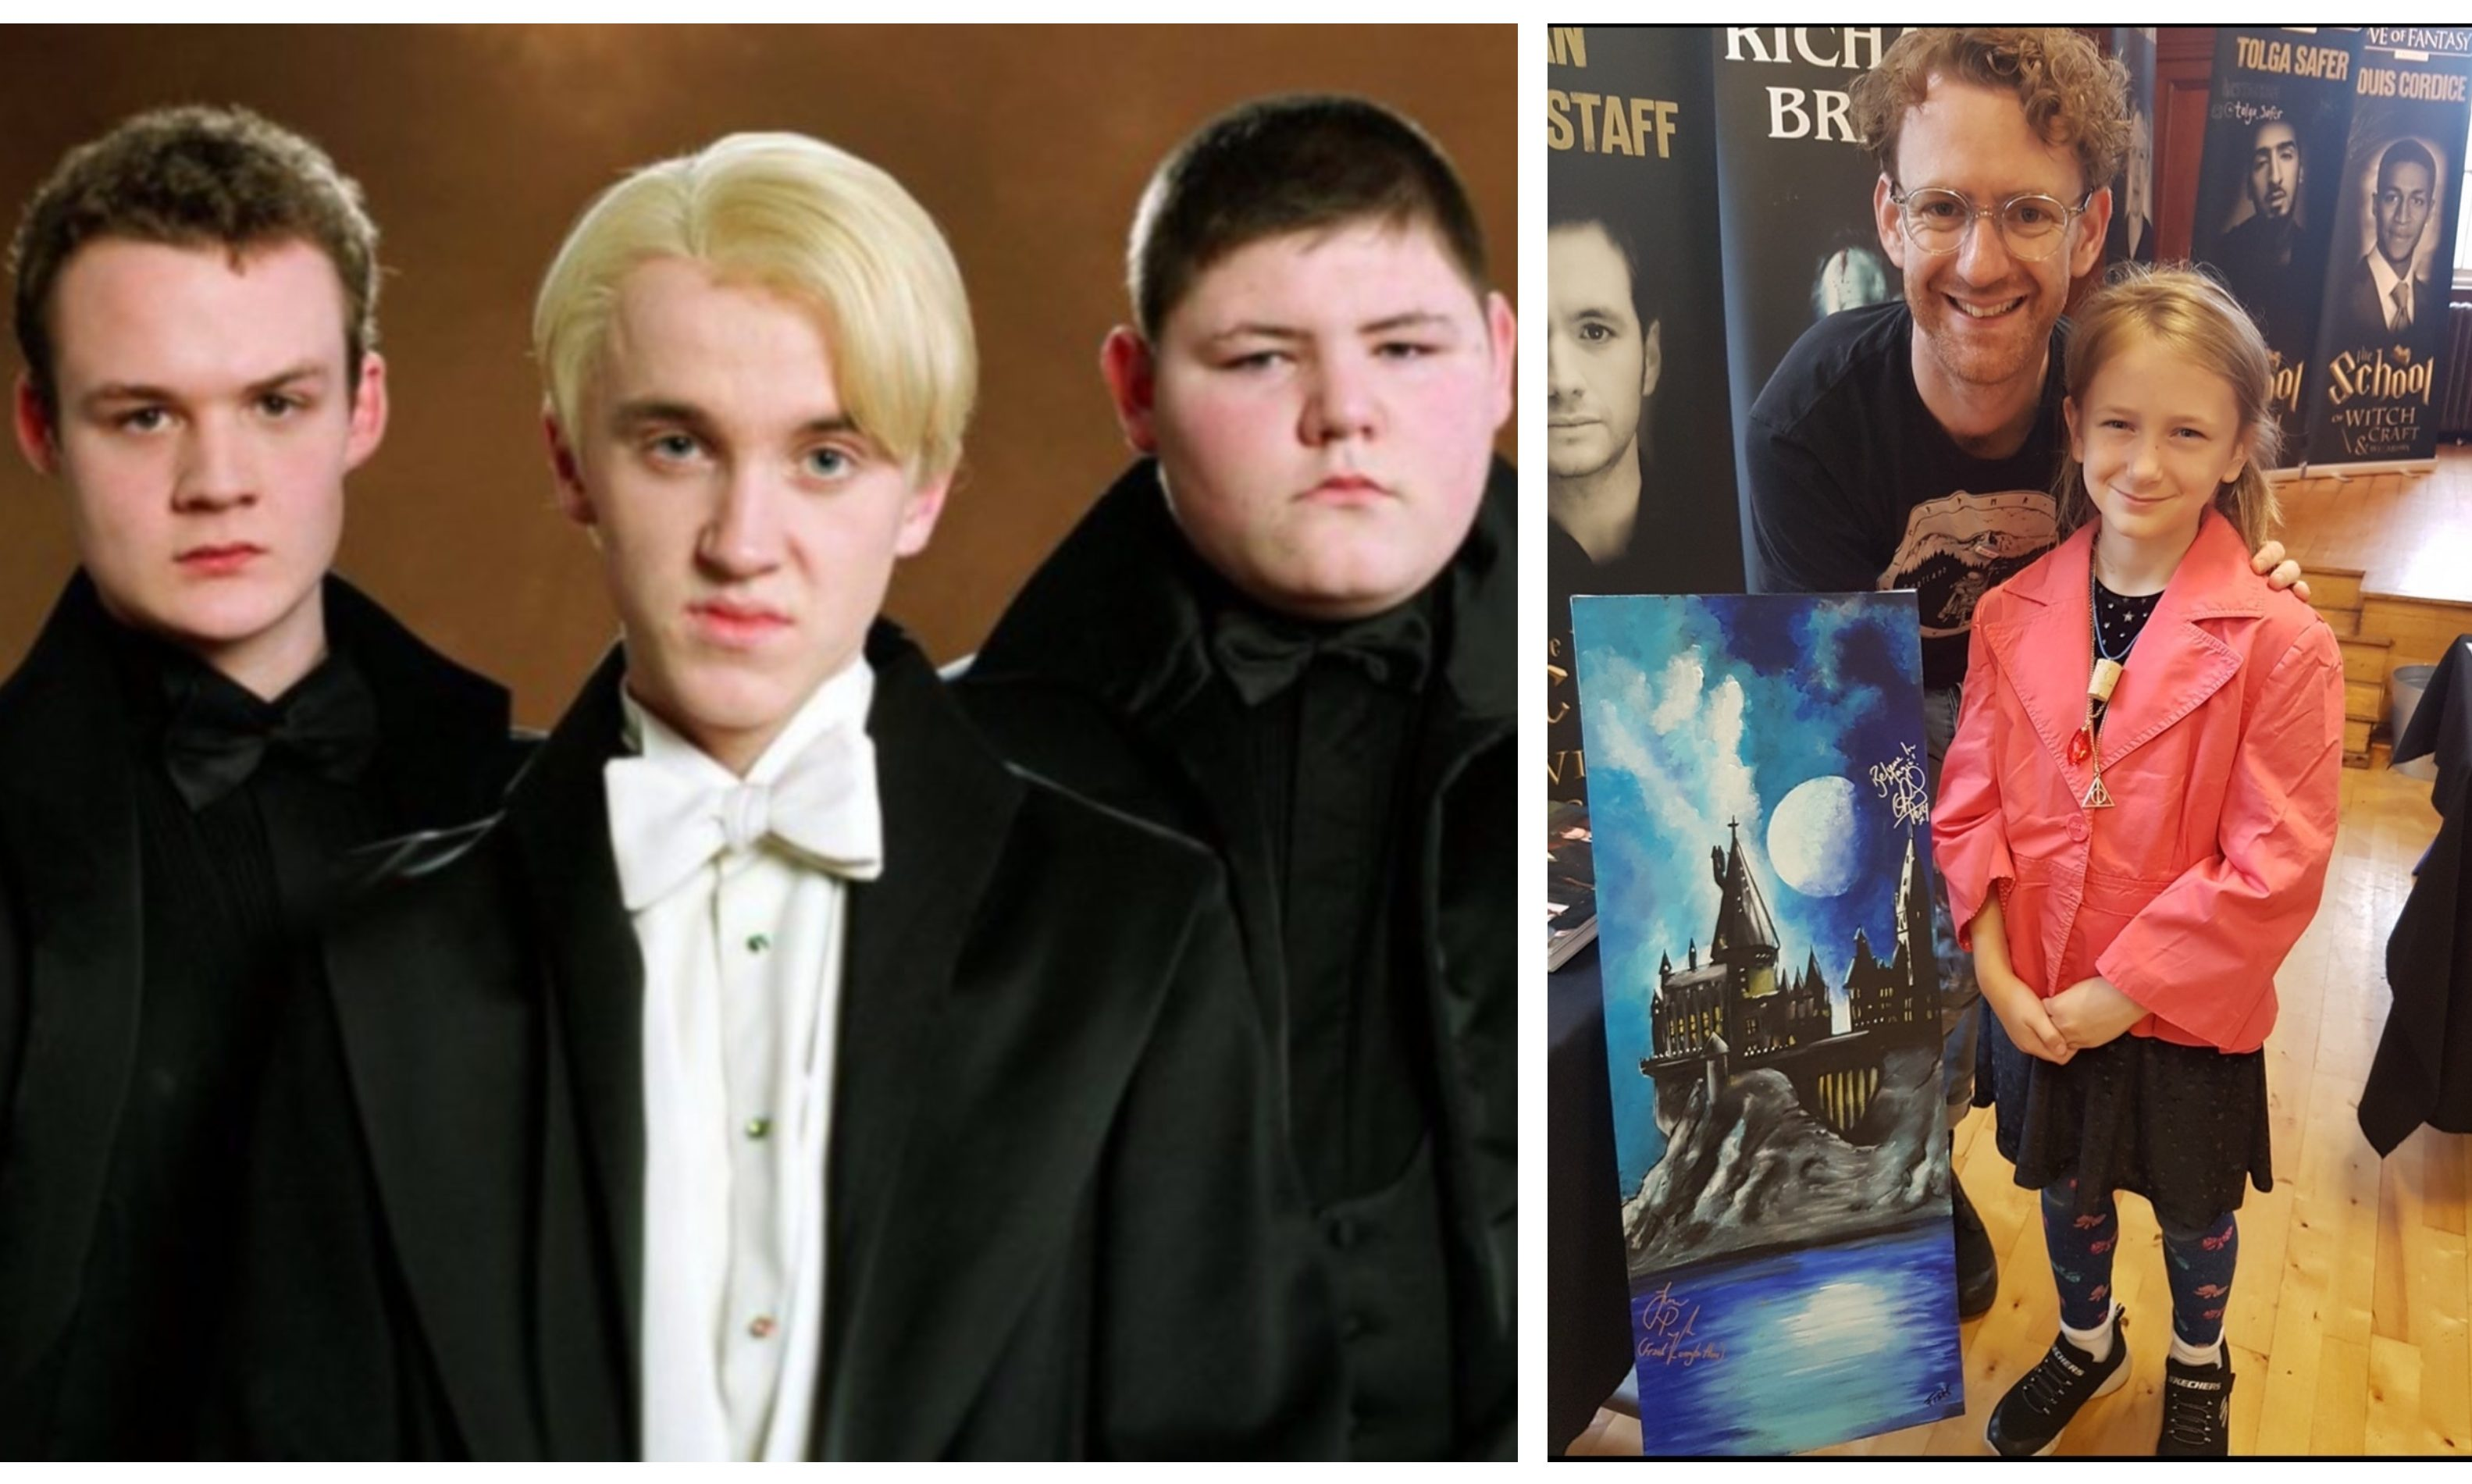 Left: Jamie Waylett and Josh Herdman as Crabbe and Goyle, flanking Tom Felton (Draco Malfoy). Right: Chris Rankin (Percy Weasley) with a fan.